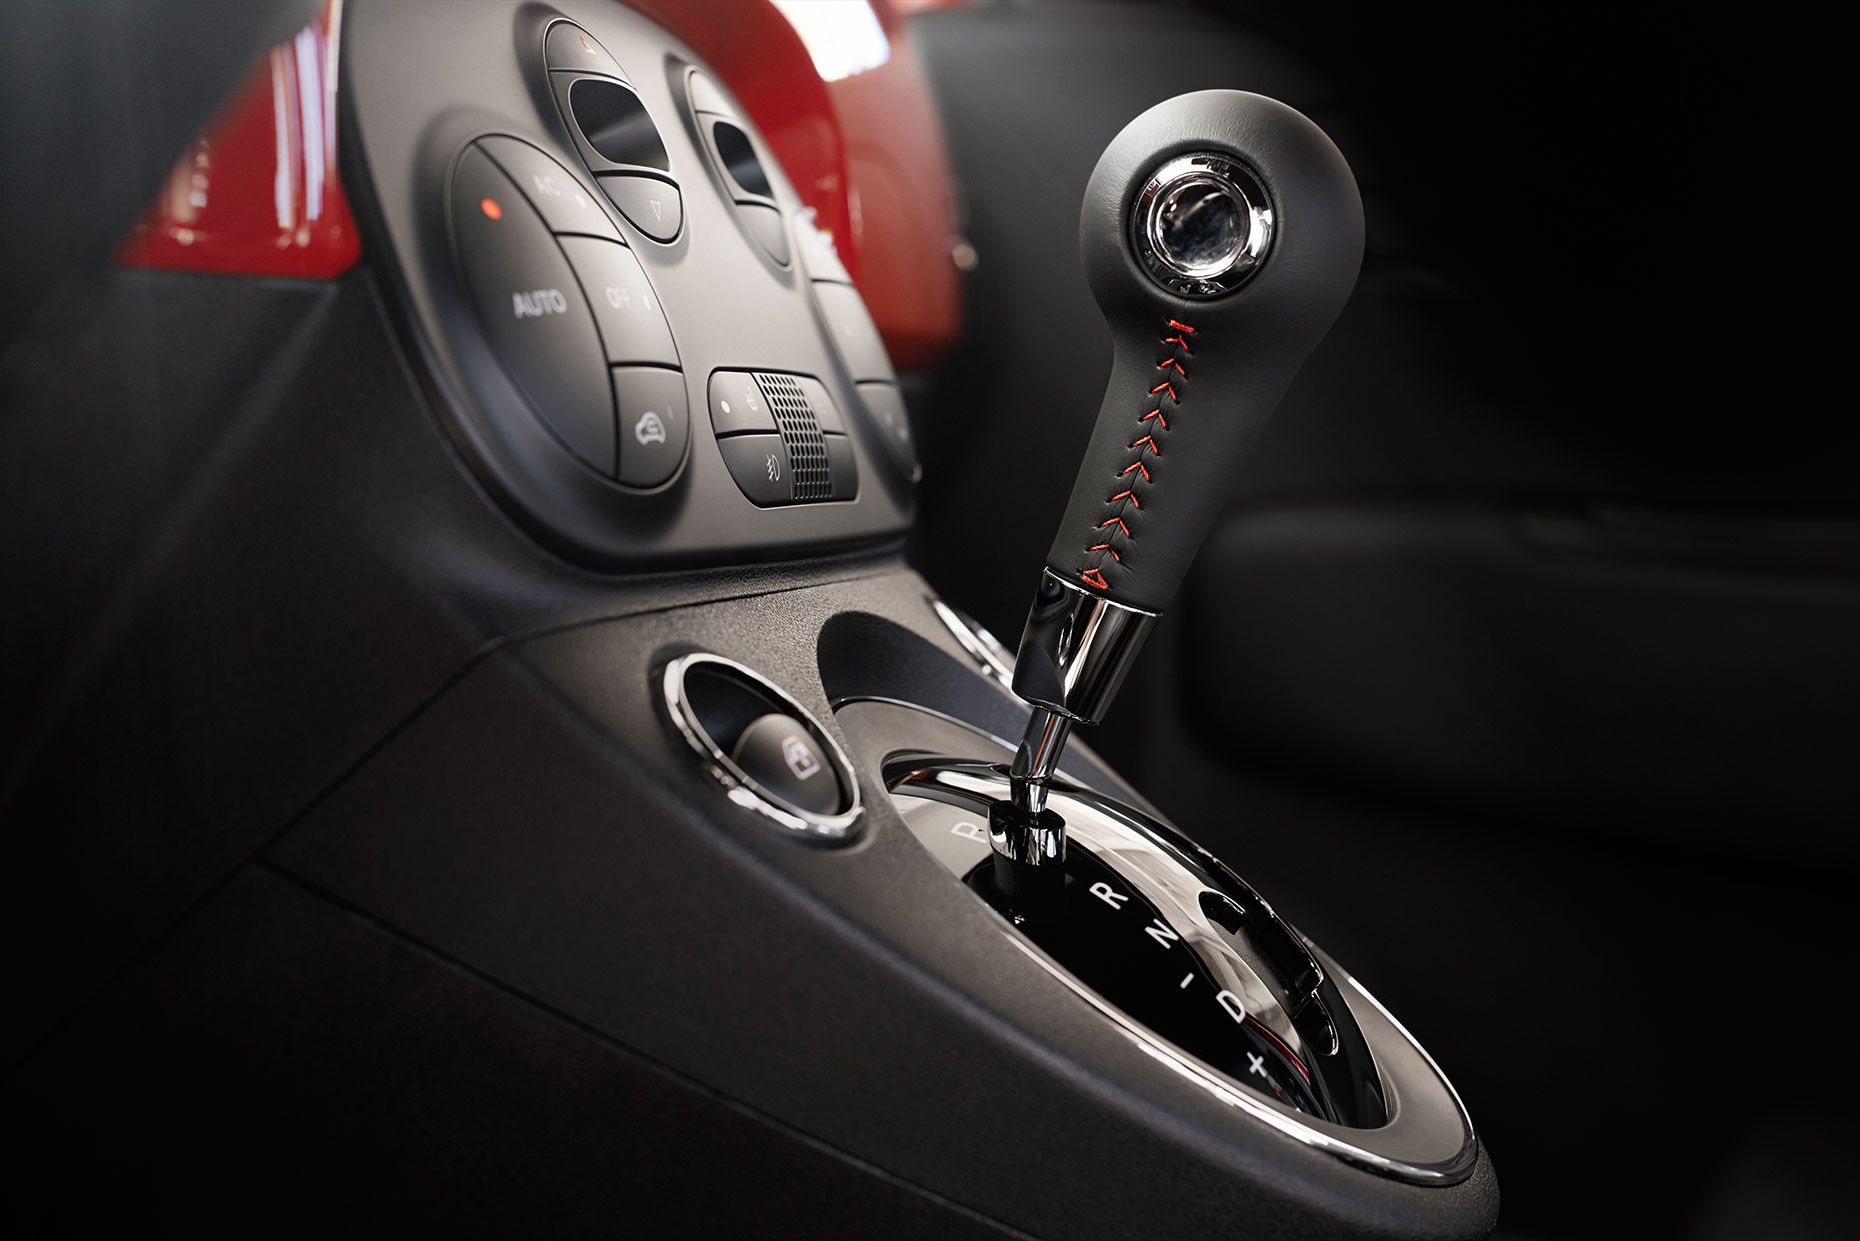 15Fiat_Abarth_07_Automatic_Transmission_Final